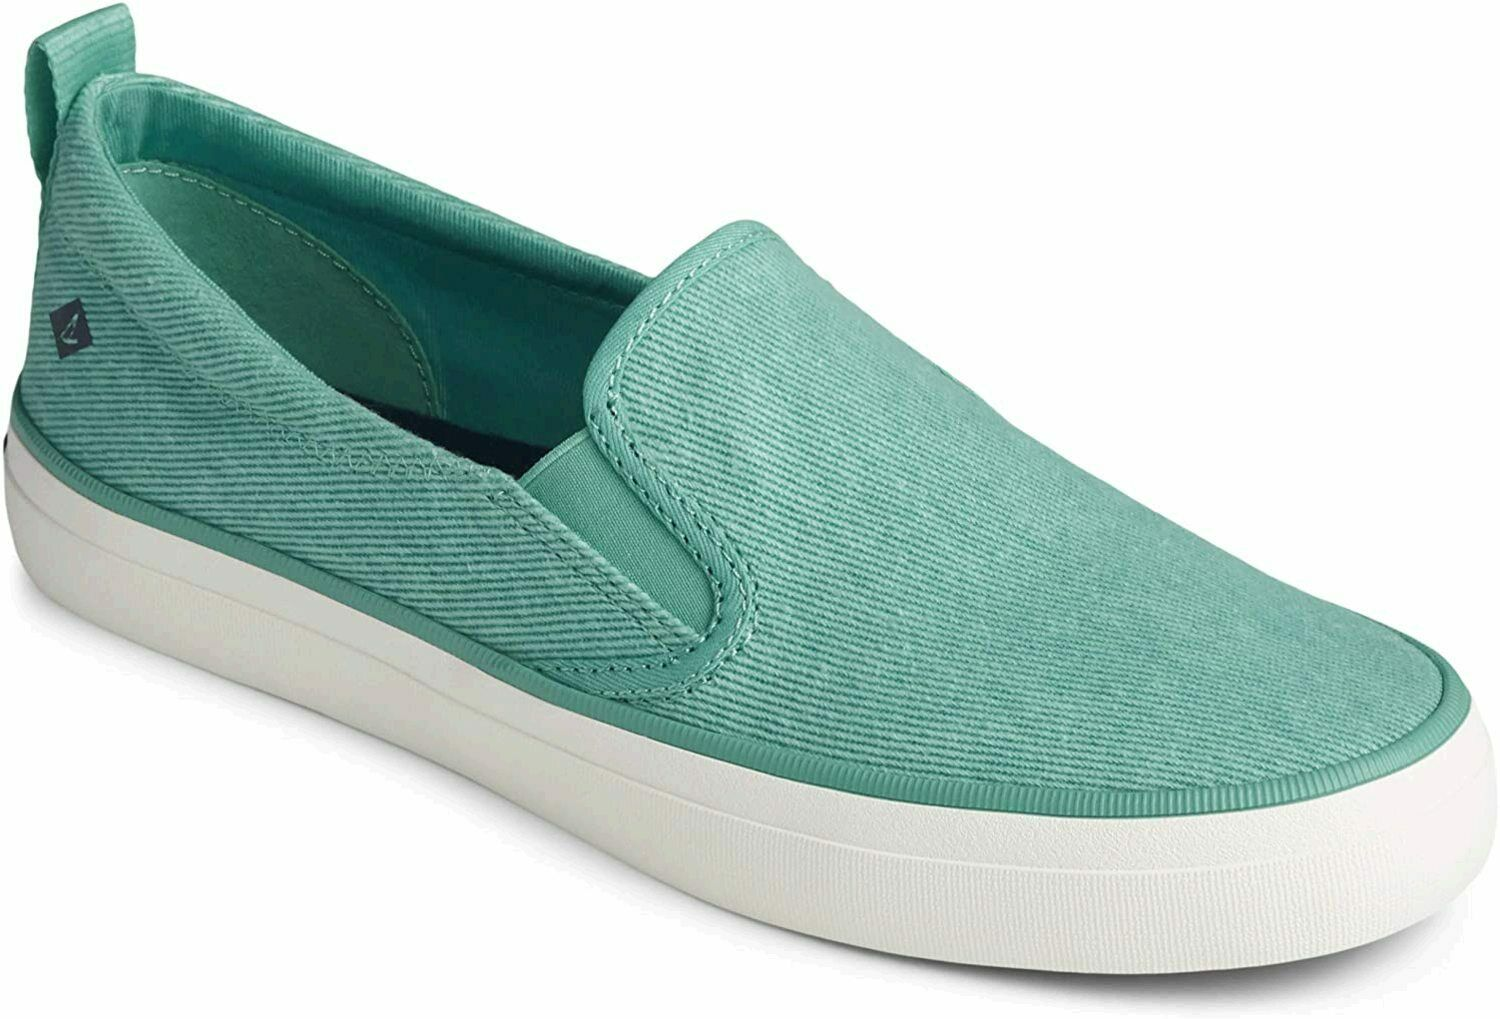 Sperry Women's Crest Twin Gore Washed Twill Sneaker, Bright Mint, Size 5.0 US /